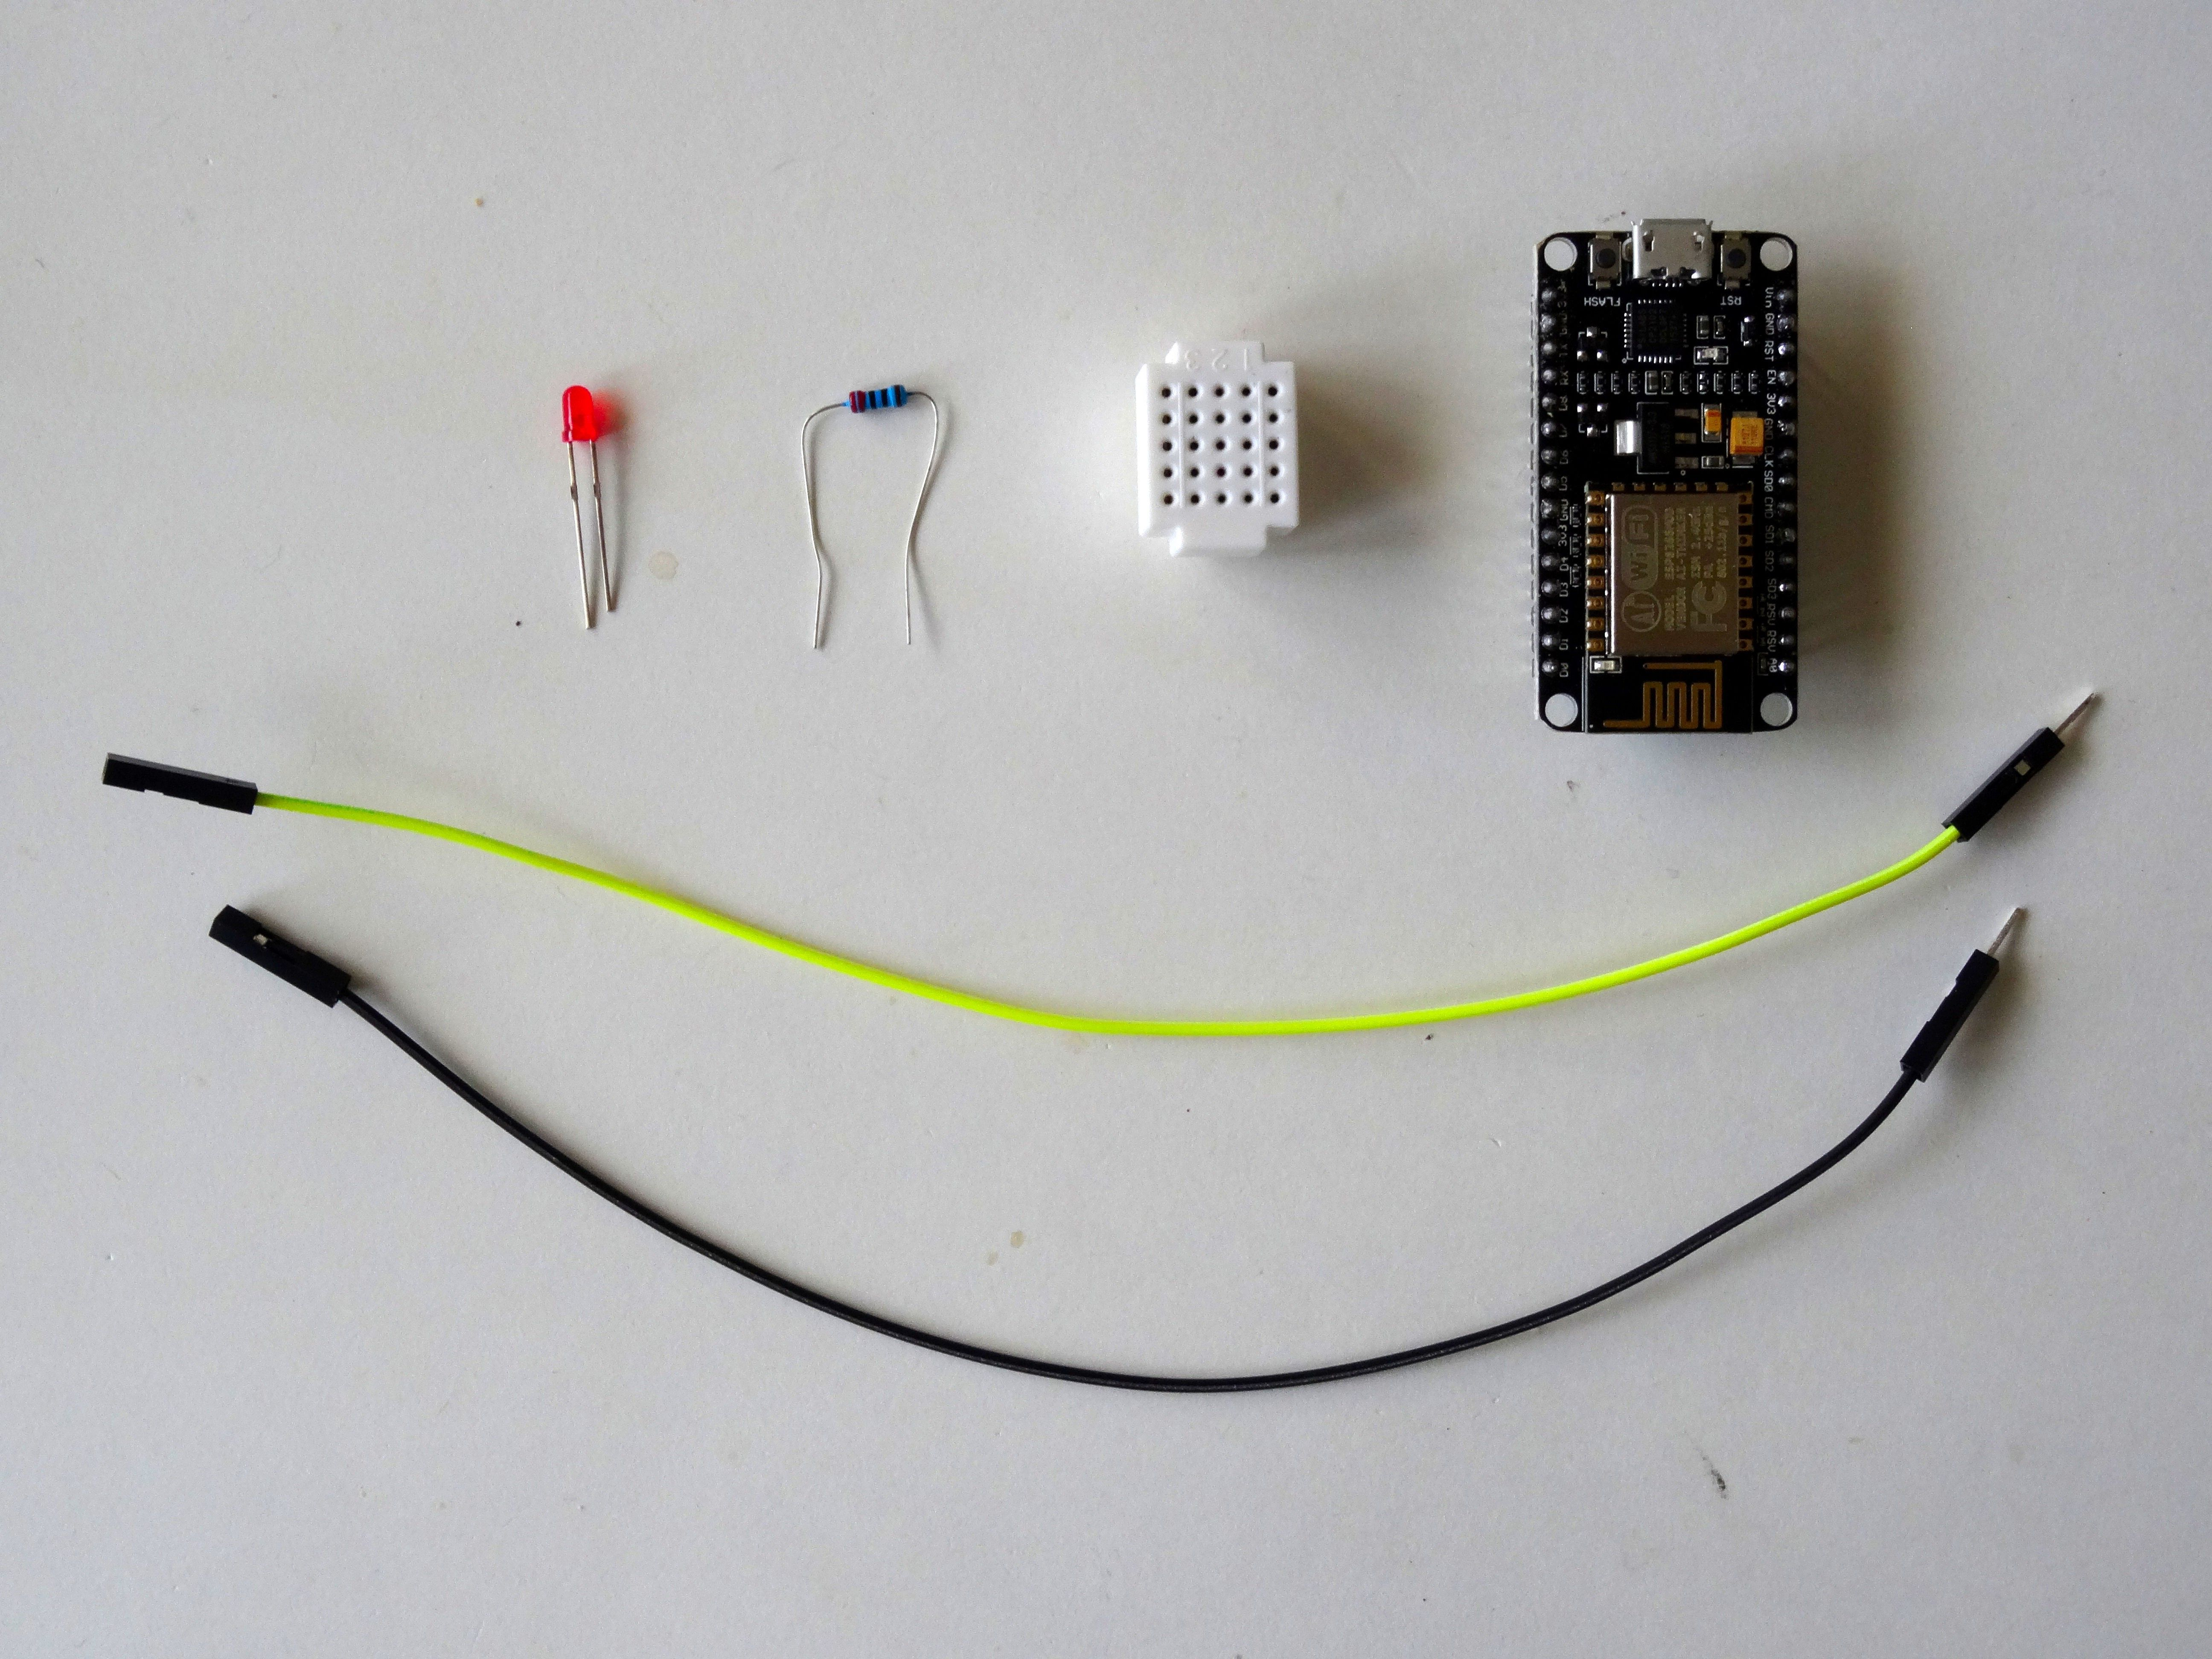 Program Esp2866 With Visuino To Flash A Led Arduino Esp8266 Ph Module For Controllers Reef Central Online Community Nodemcu